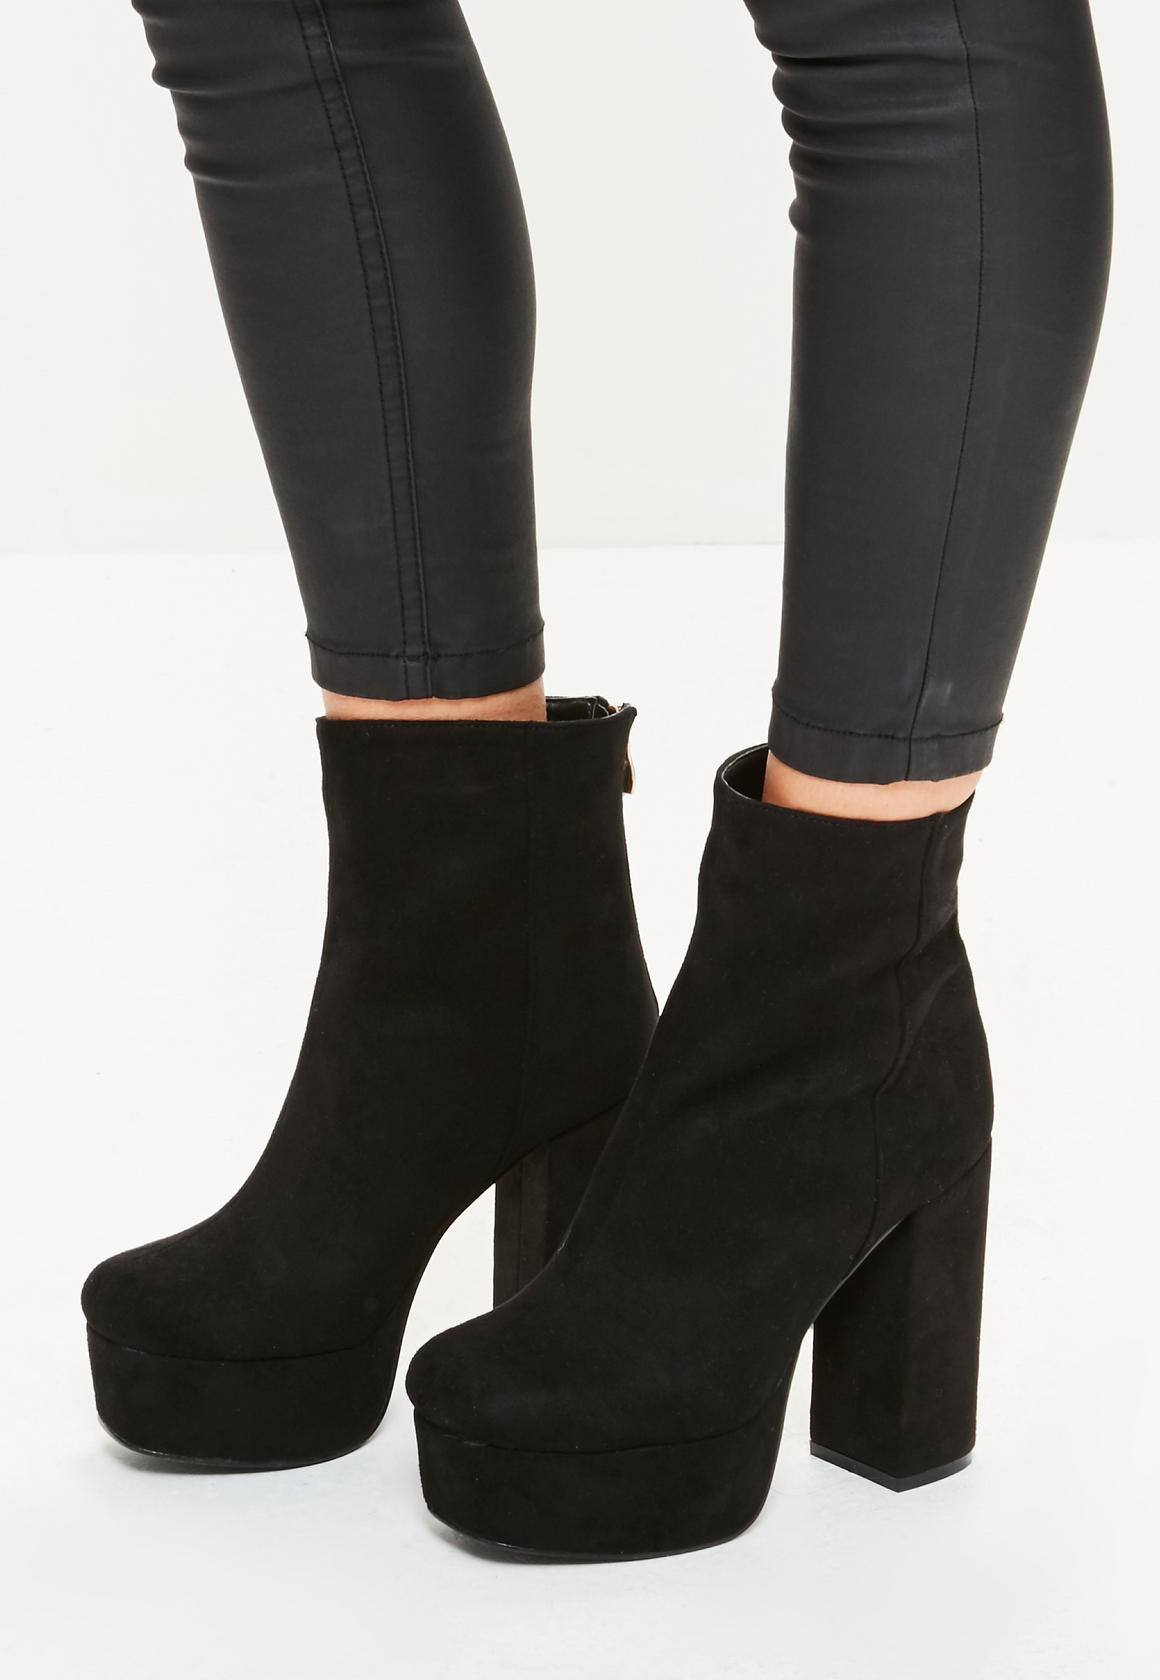 black boots black super platform ankle boots. previous next YJCDEMR